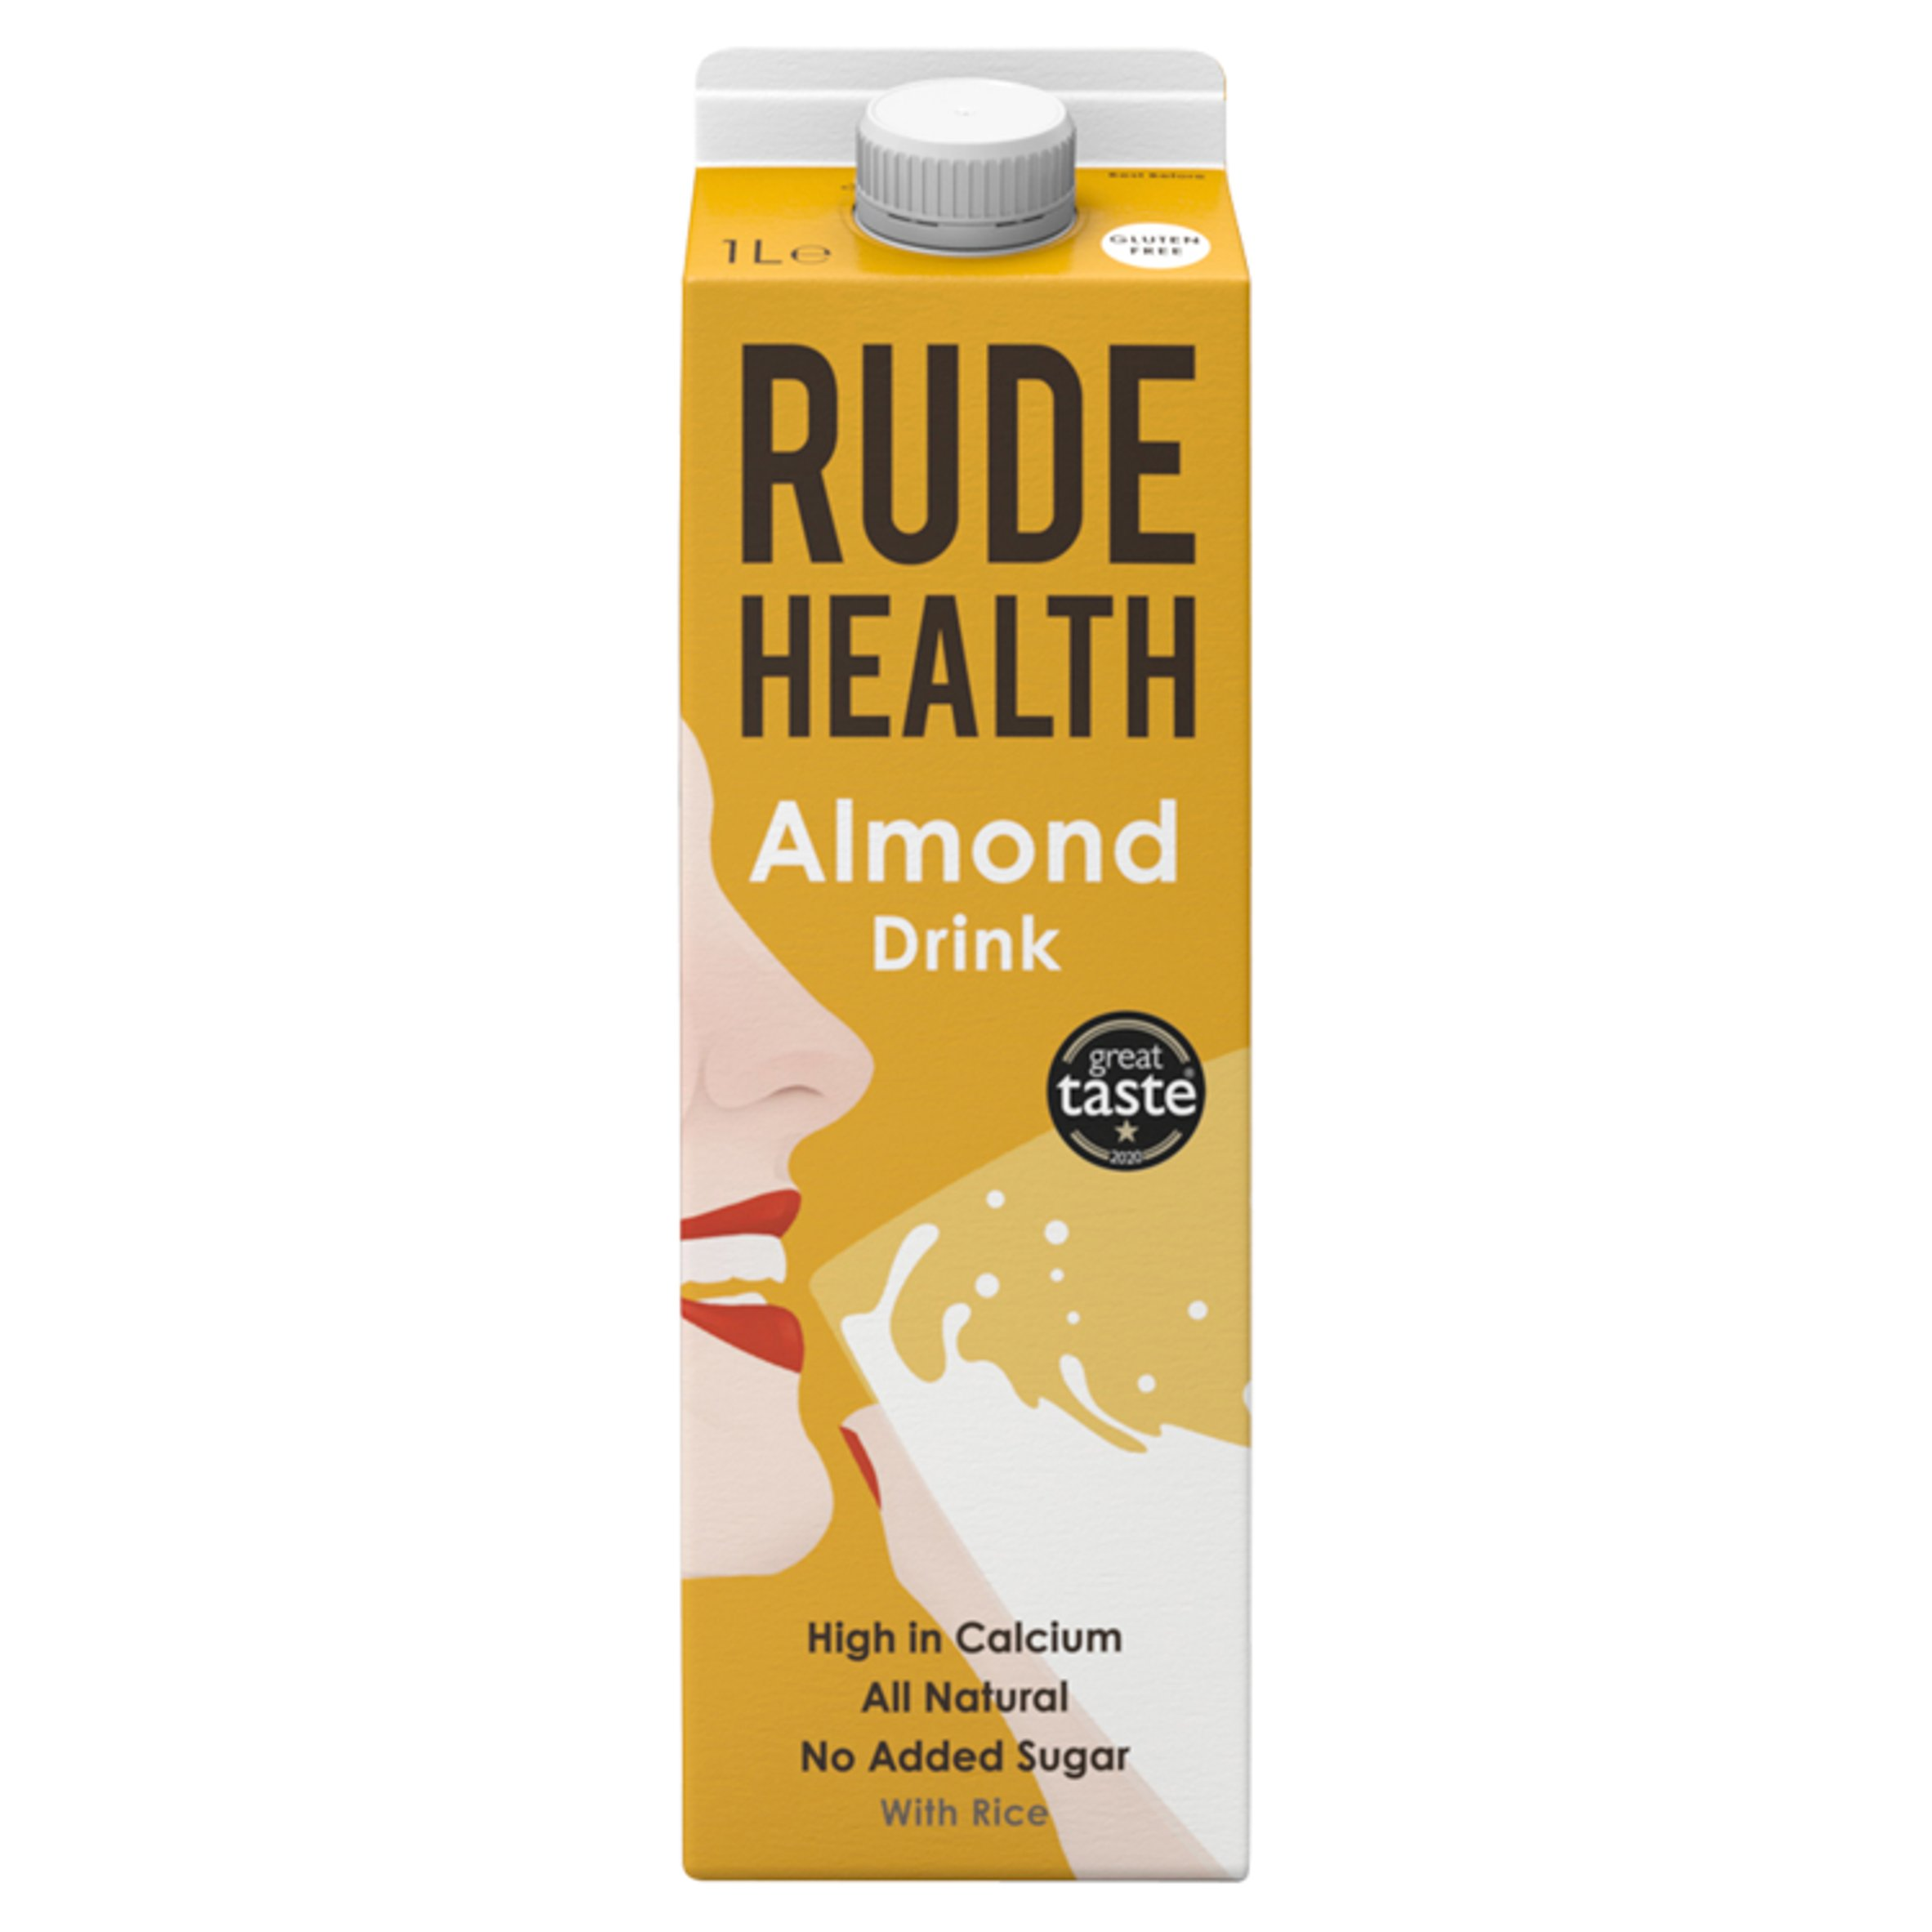 Rude Health Chilled Almond Drink 1 Litre